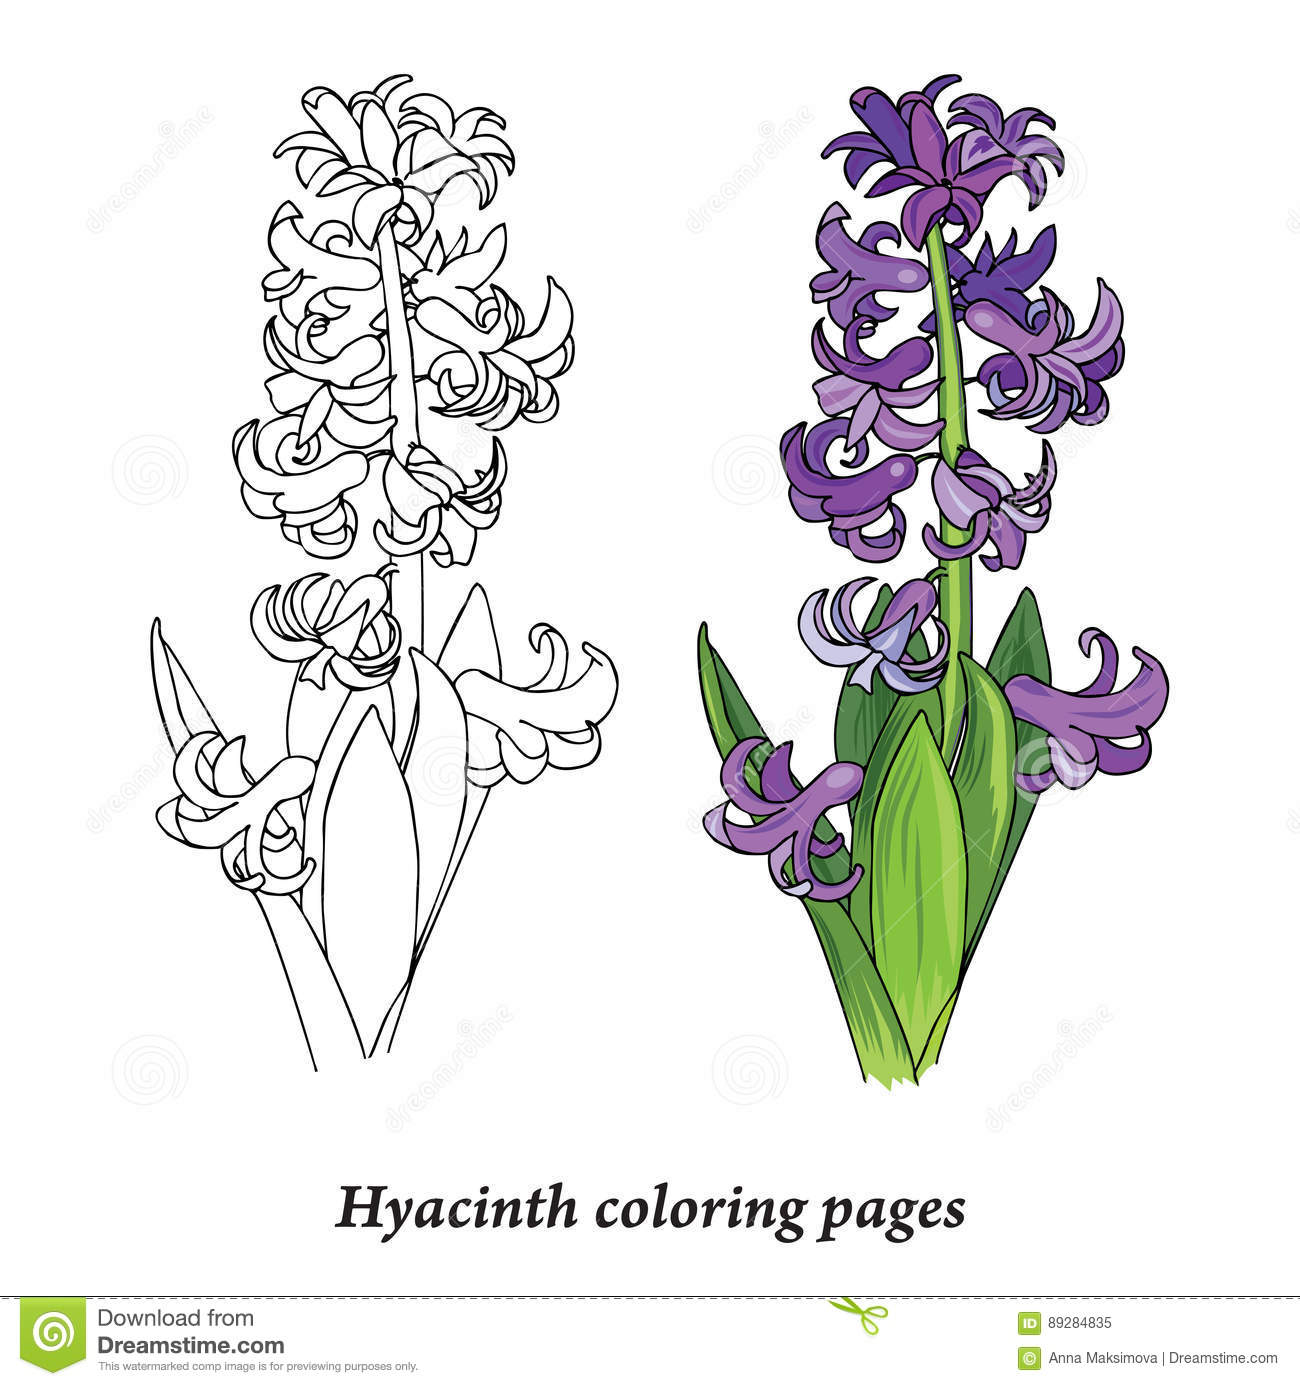 Hyacinth coloring pages stock vector. Illustration of ...